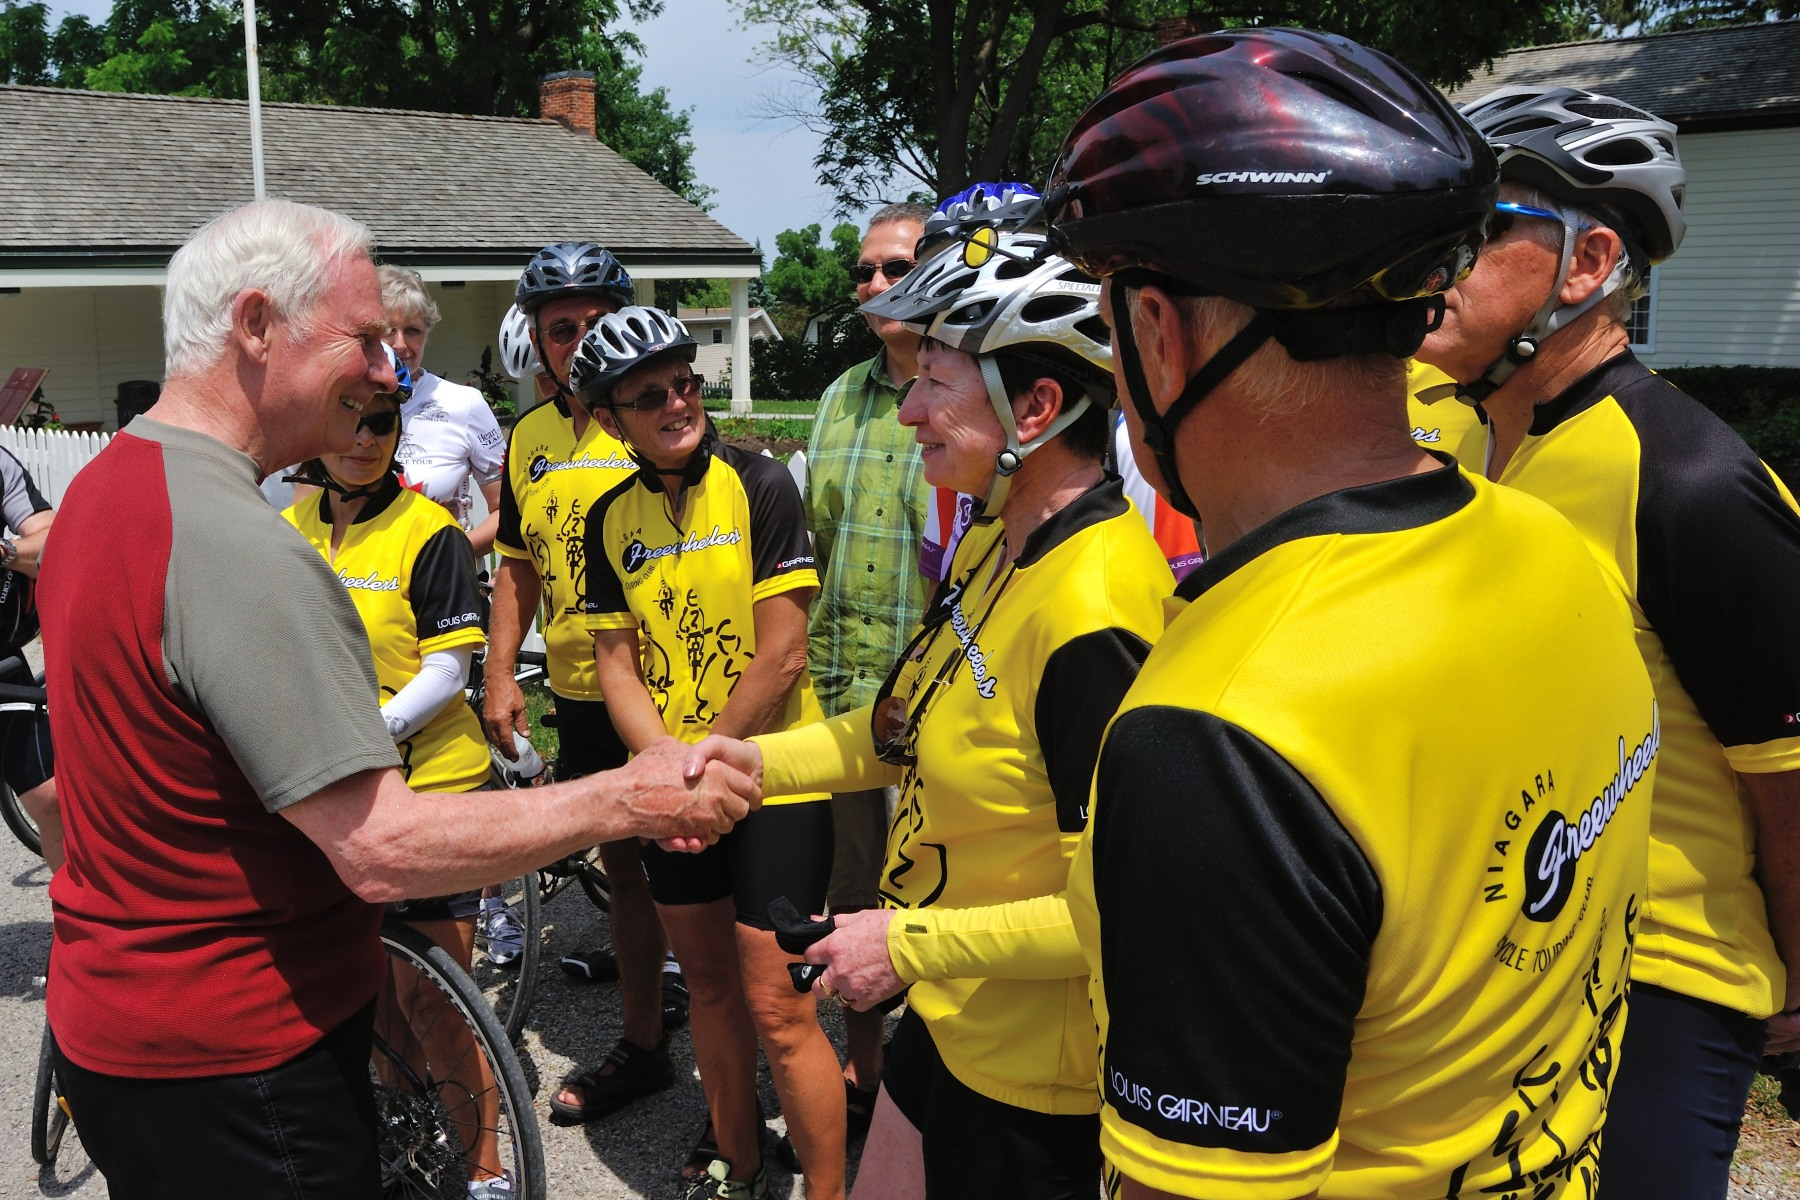 His Excellency cycled 12 kilometres from the Laura Secord Homestead to Fort George on the Niagara River Recreation Trail, with volunteers and cycling enthusiasts from the Niagara Parks Commission (NPC) and the Trans Canada Trail.